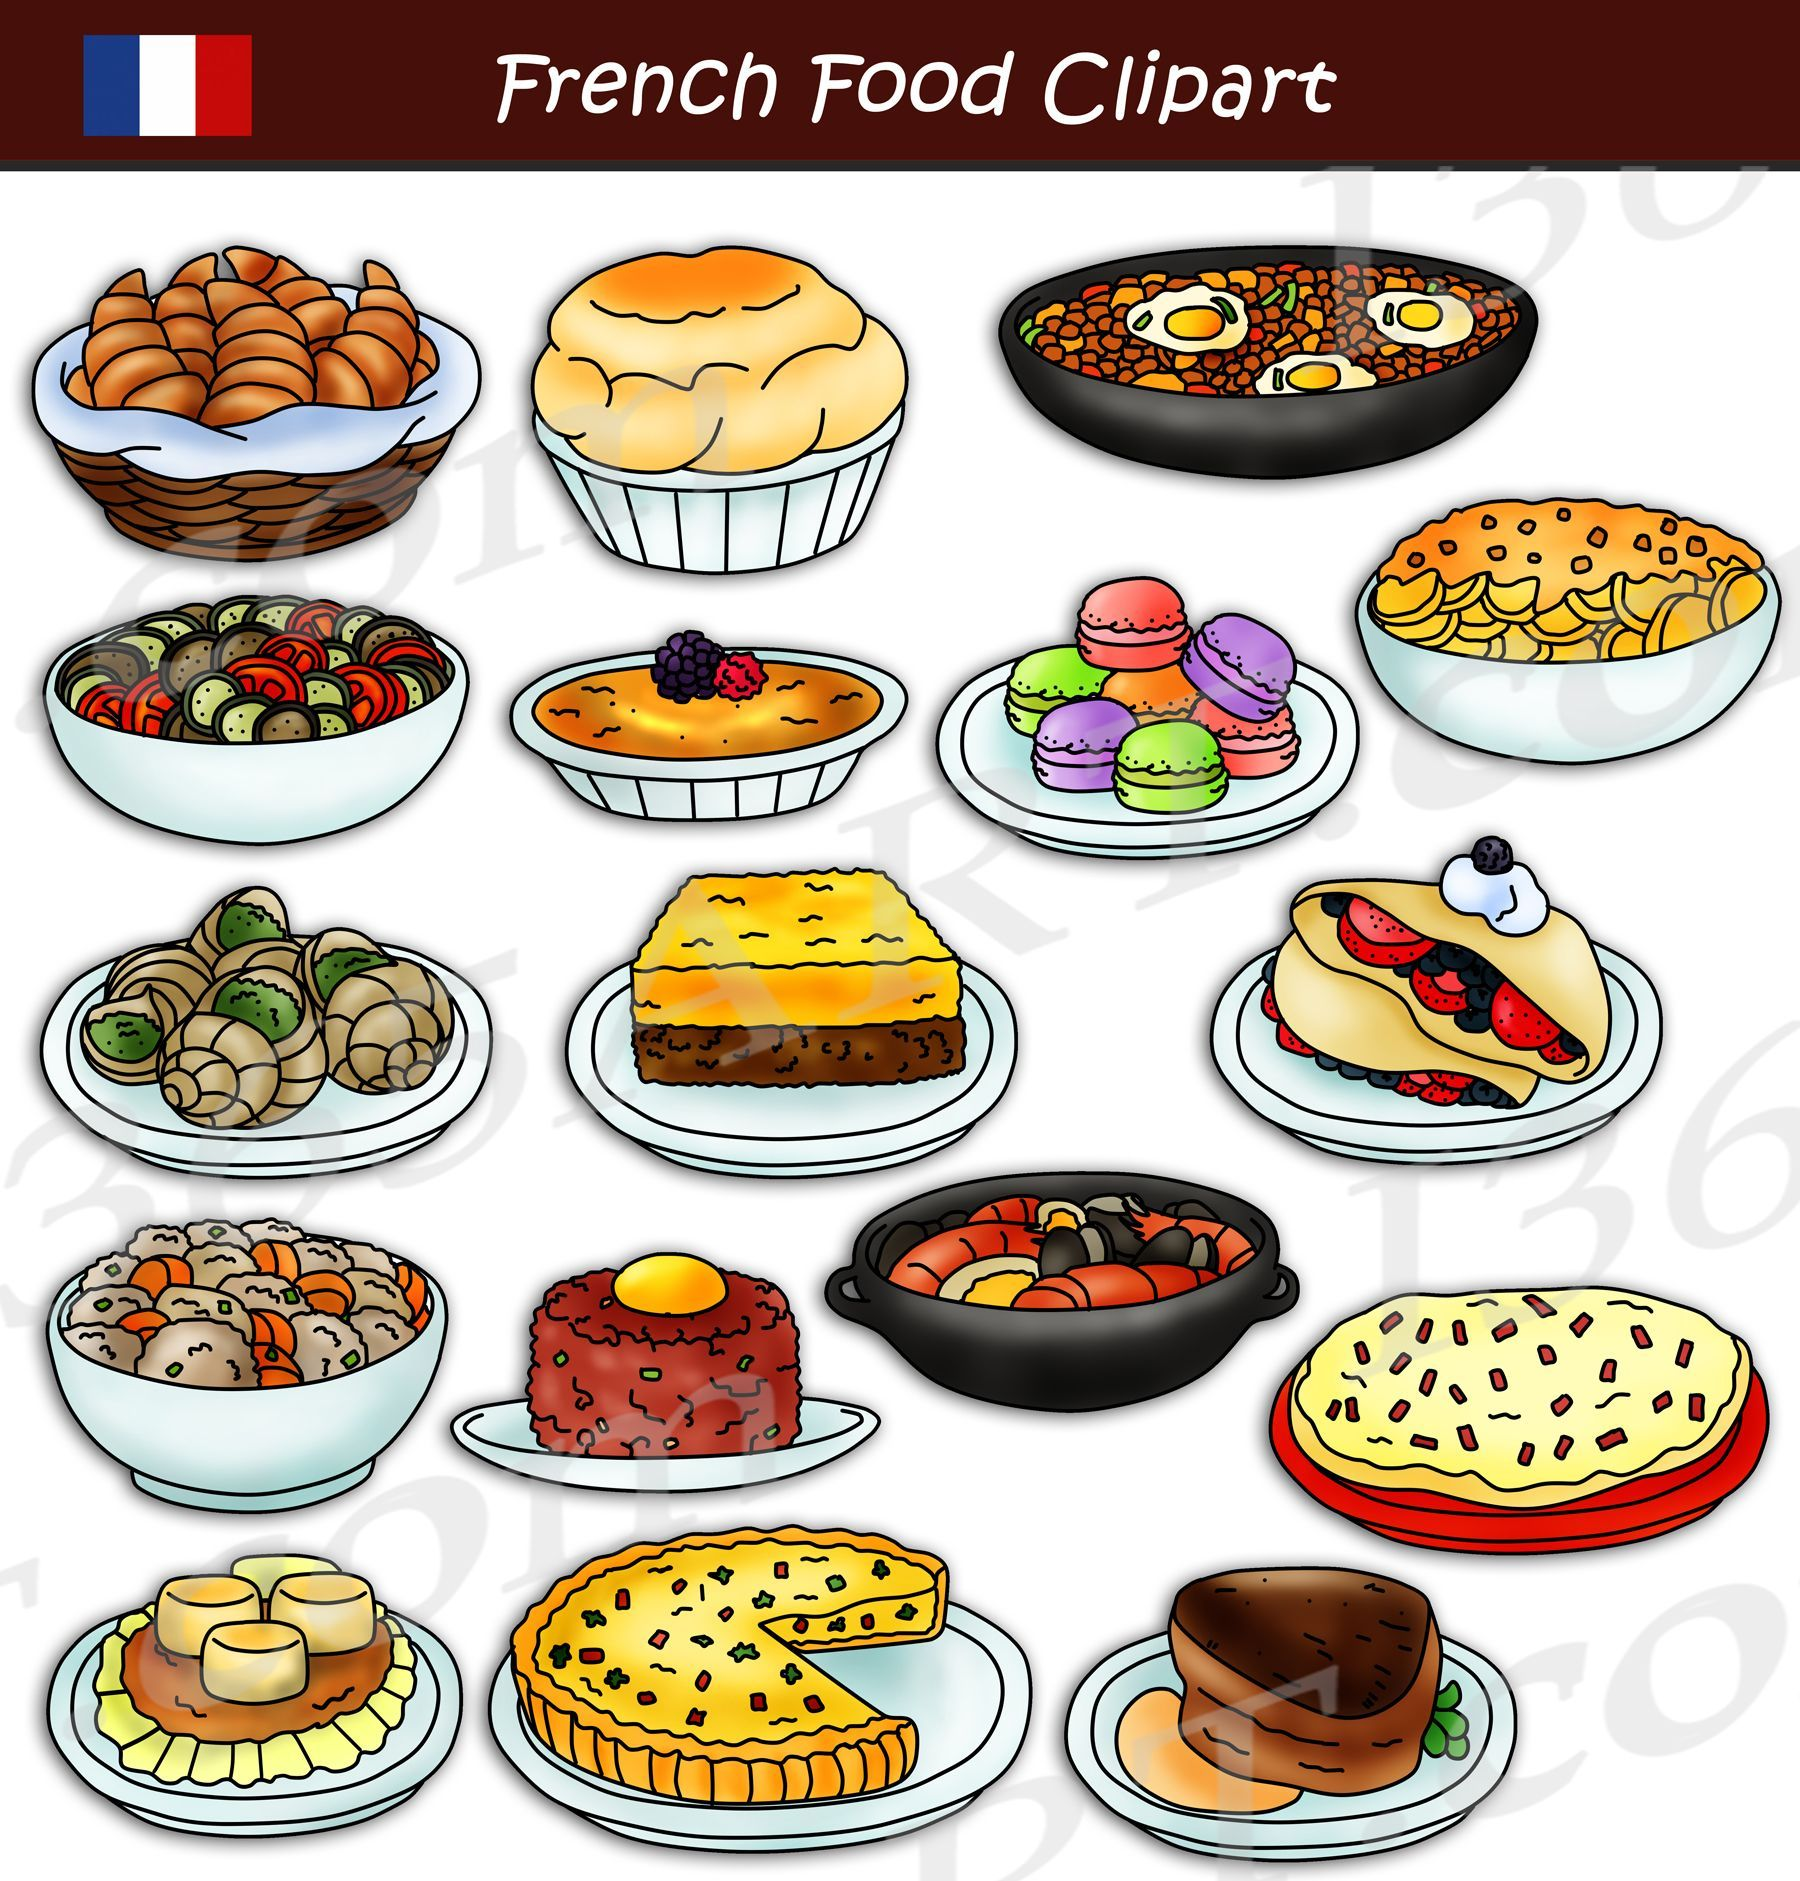 French Food Food Clipart Set Download Graphics By Clipart 4 School Https Clipart4school Com Product French Food Food Cli In 2020 Food Clipart French Food Food